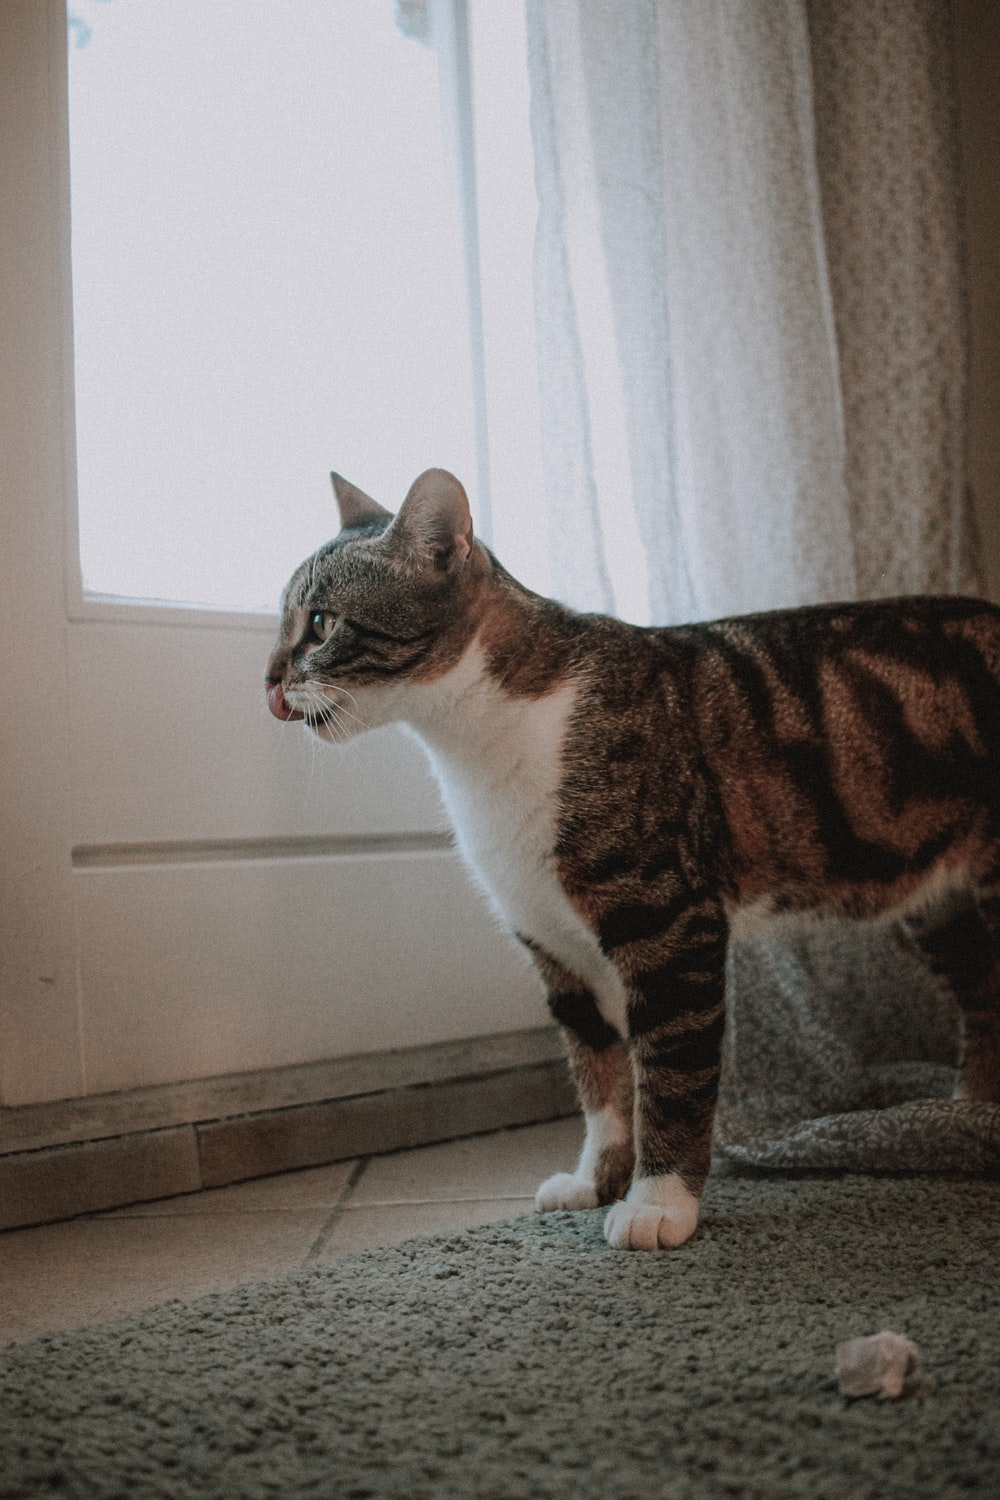 brown and white tabby cat on gray textile